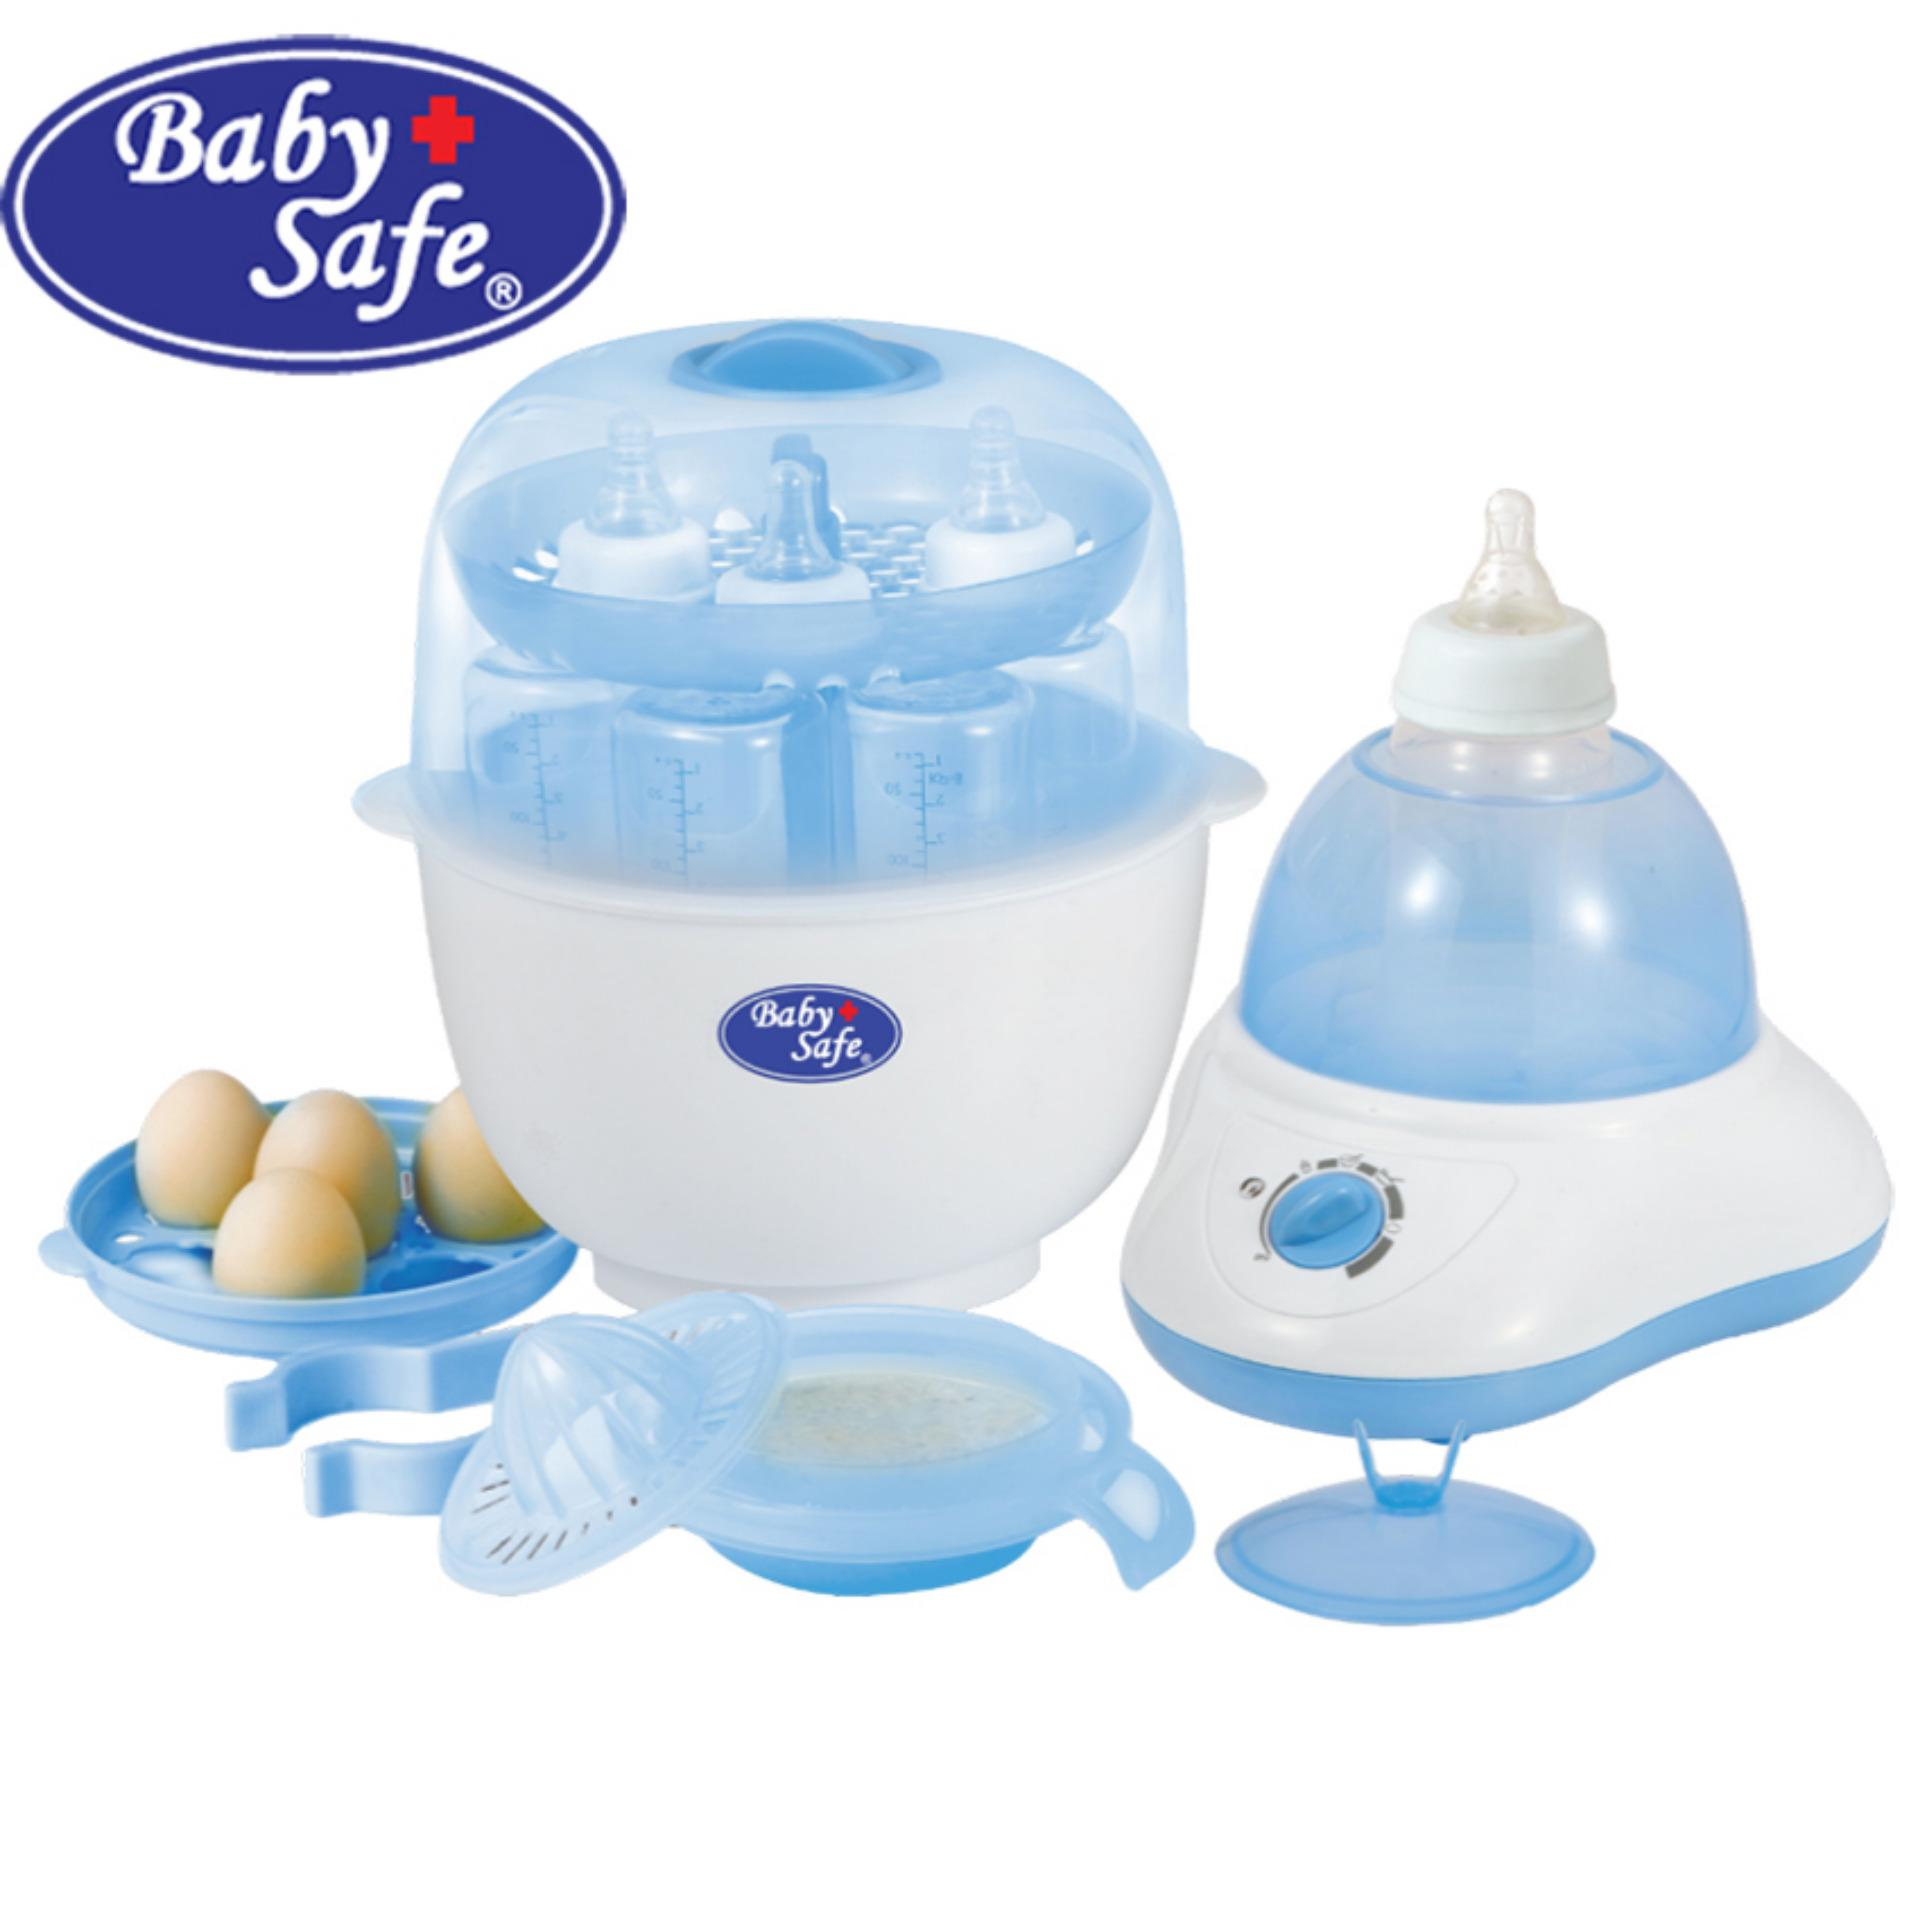 Toko Baby Safe Lb 309 Multifunction Bottle Sterilizer Online Indonesia